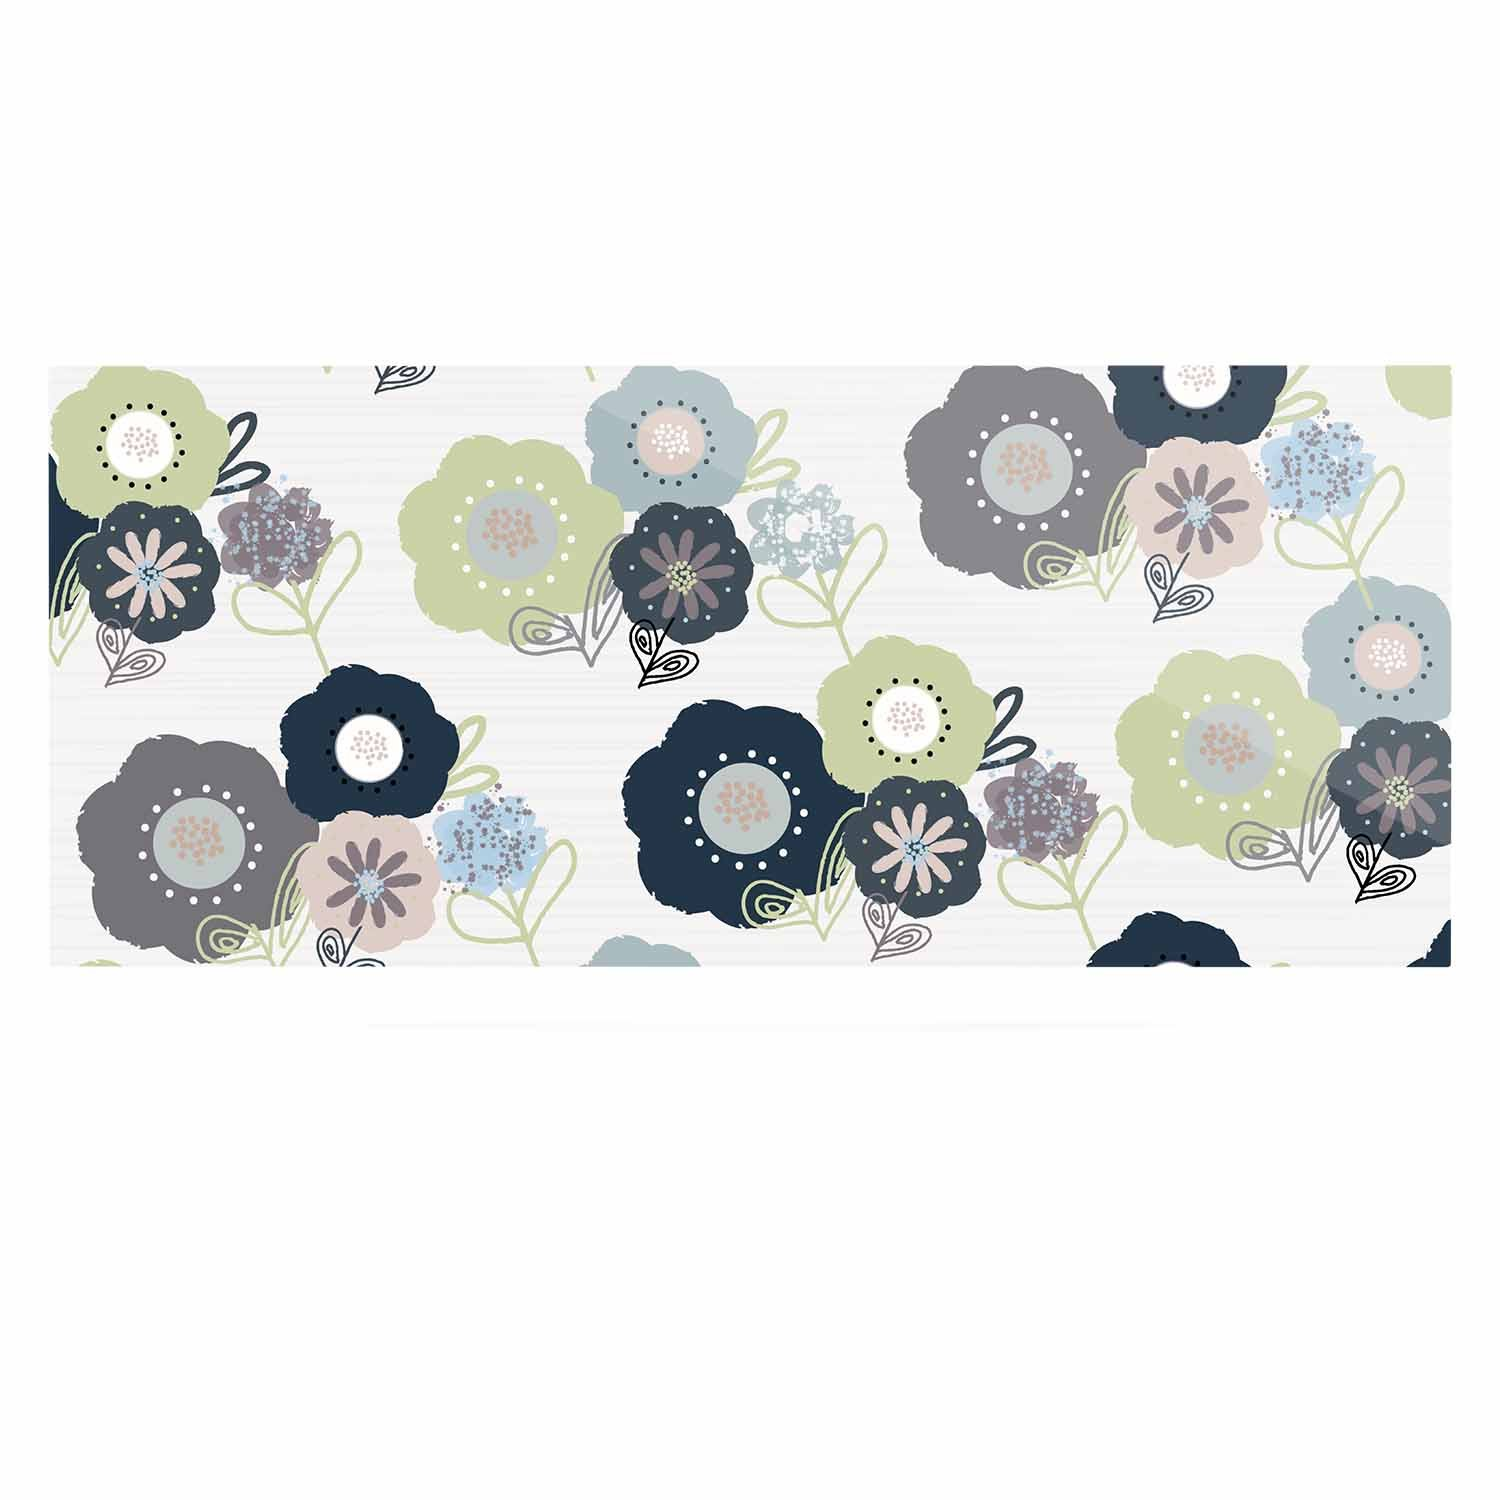 24 x 36 Kess InHouse Jolene Heckman Floral Bunches Blue Green Luxe Rectangle Panel